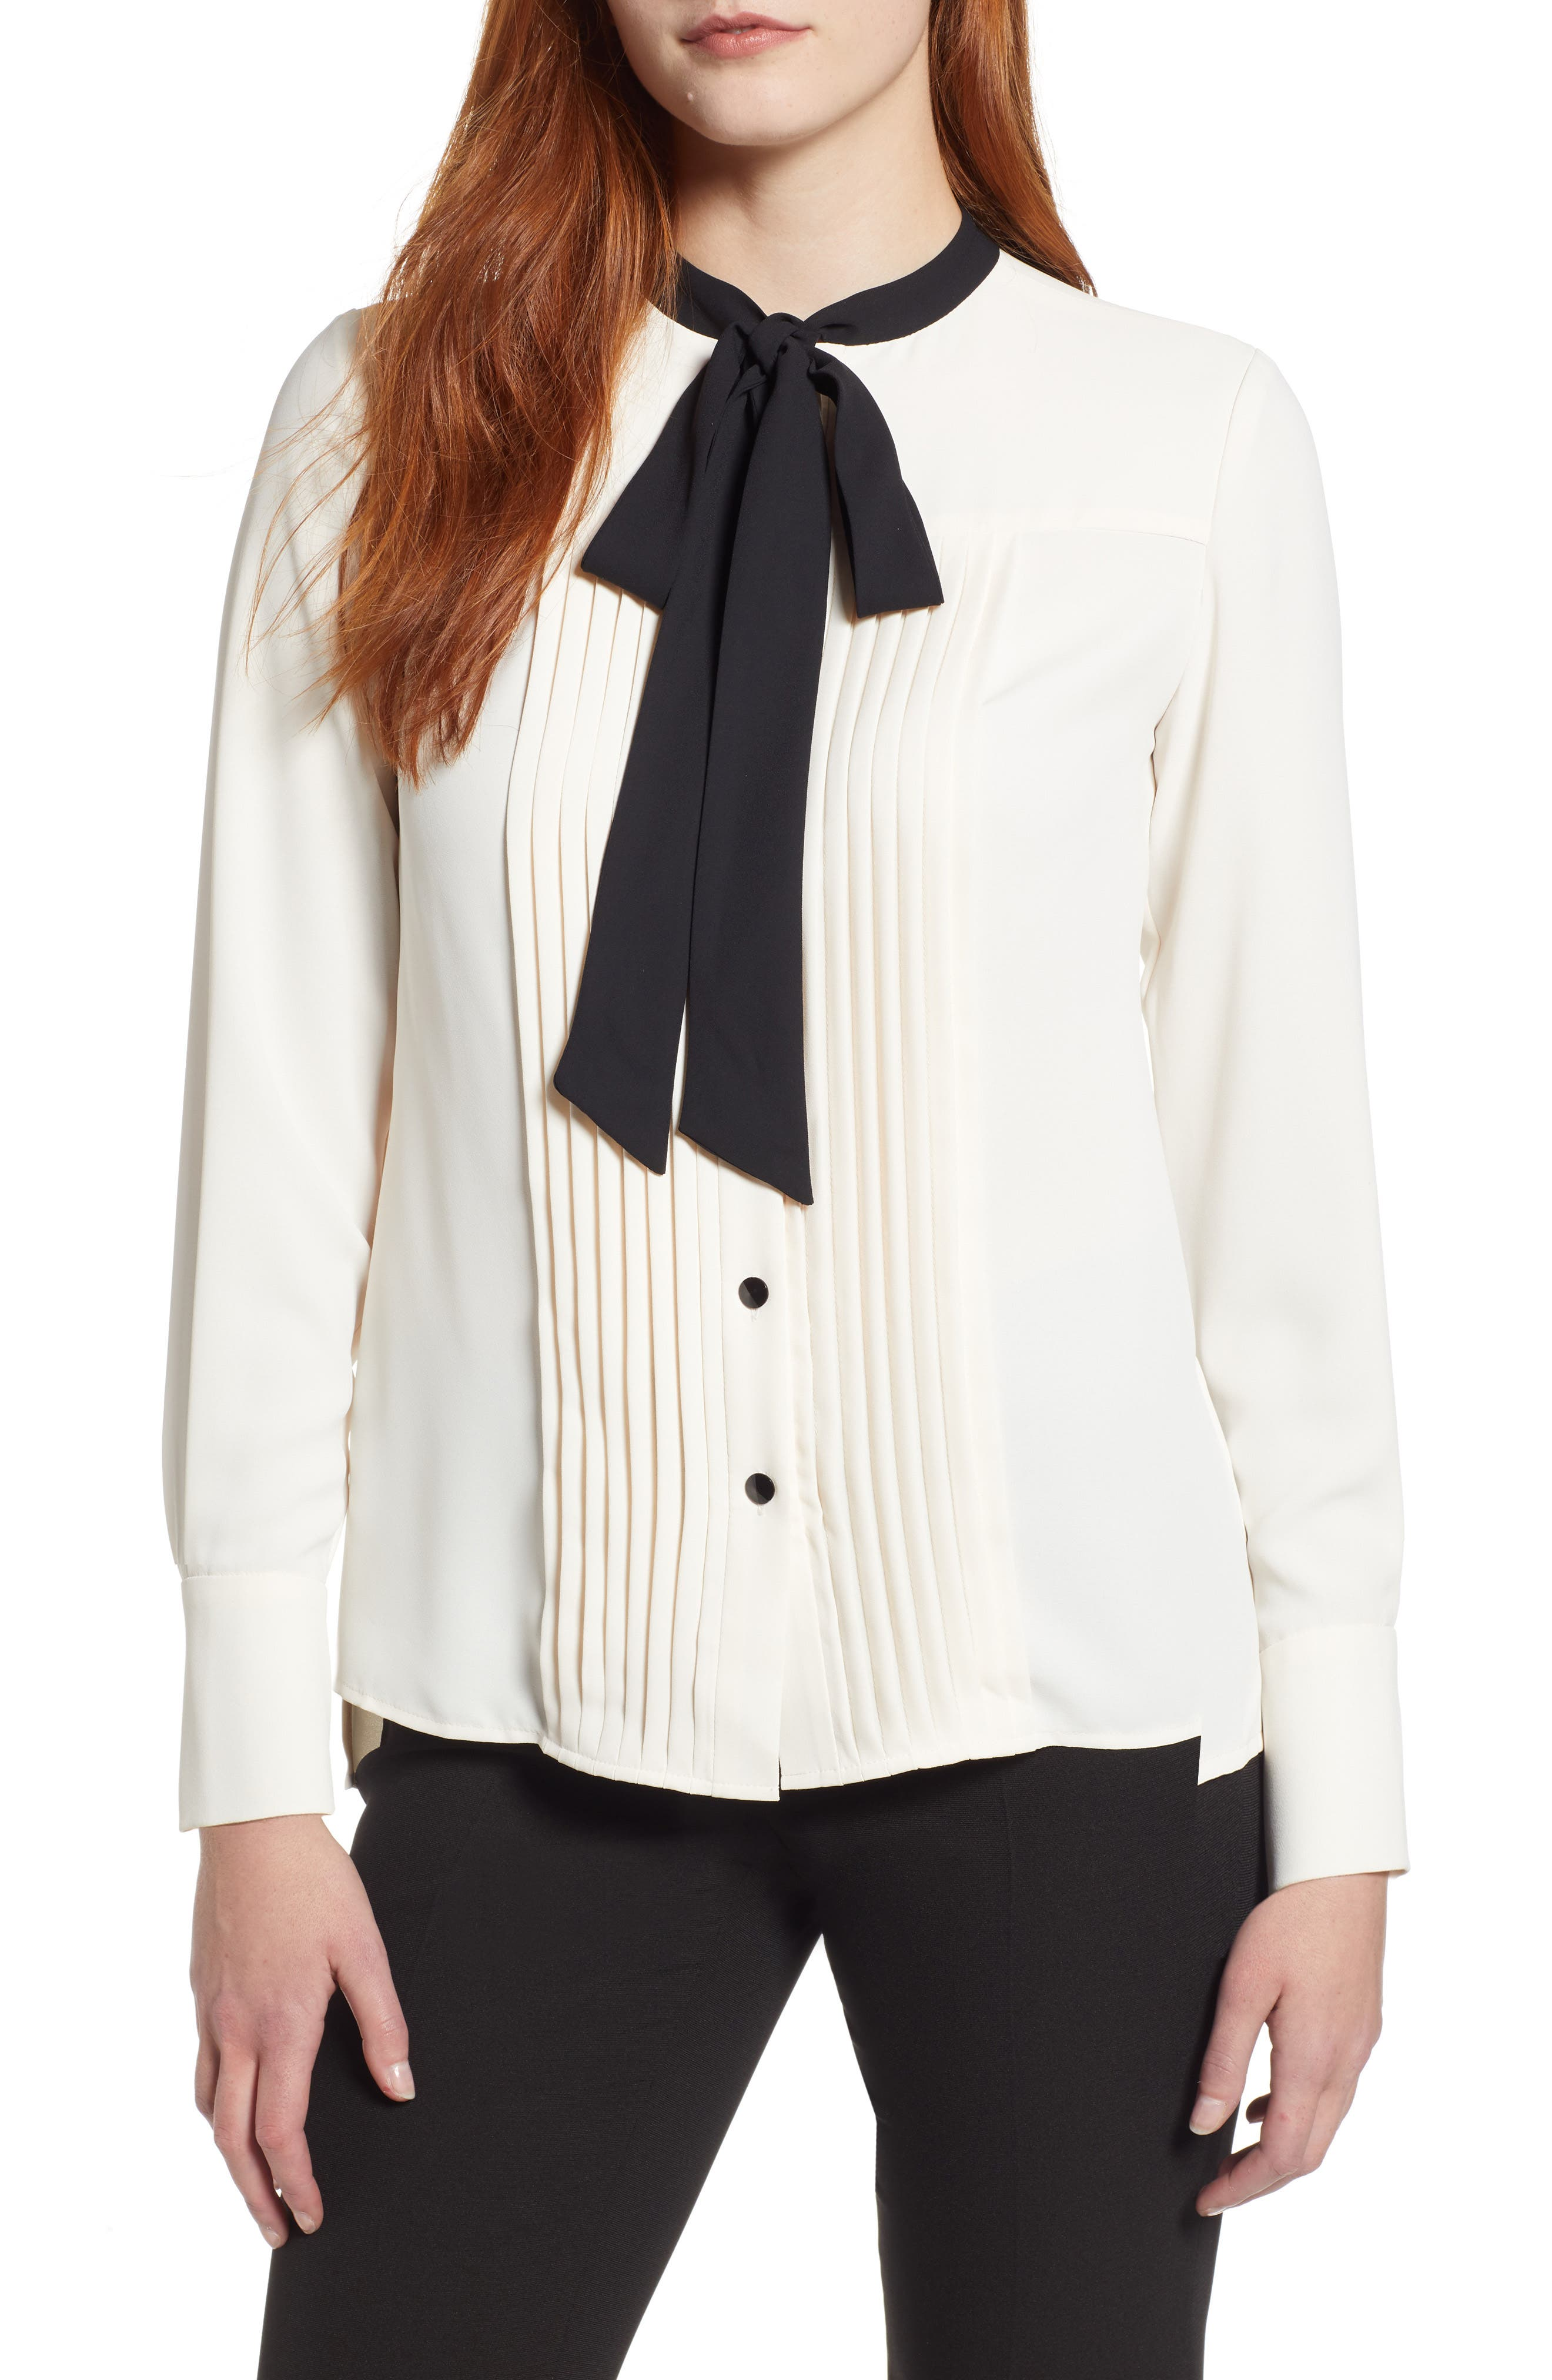 1920s Style Blouses, Shirts, Sweaters, Cardigans Womens Anne Klein New York Bow Blouse Size 10 - White $89.00 AT vintagedancer.com